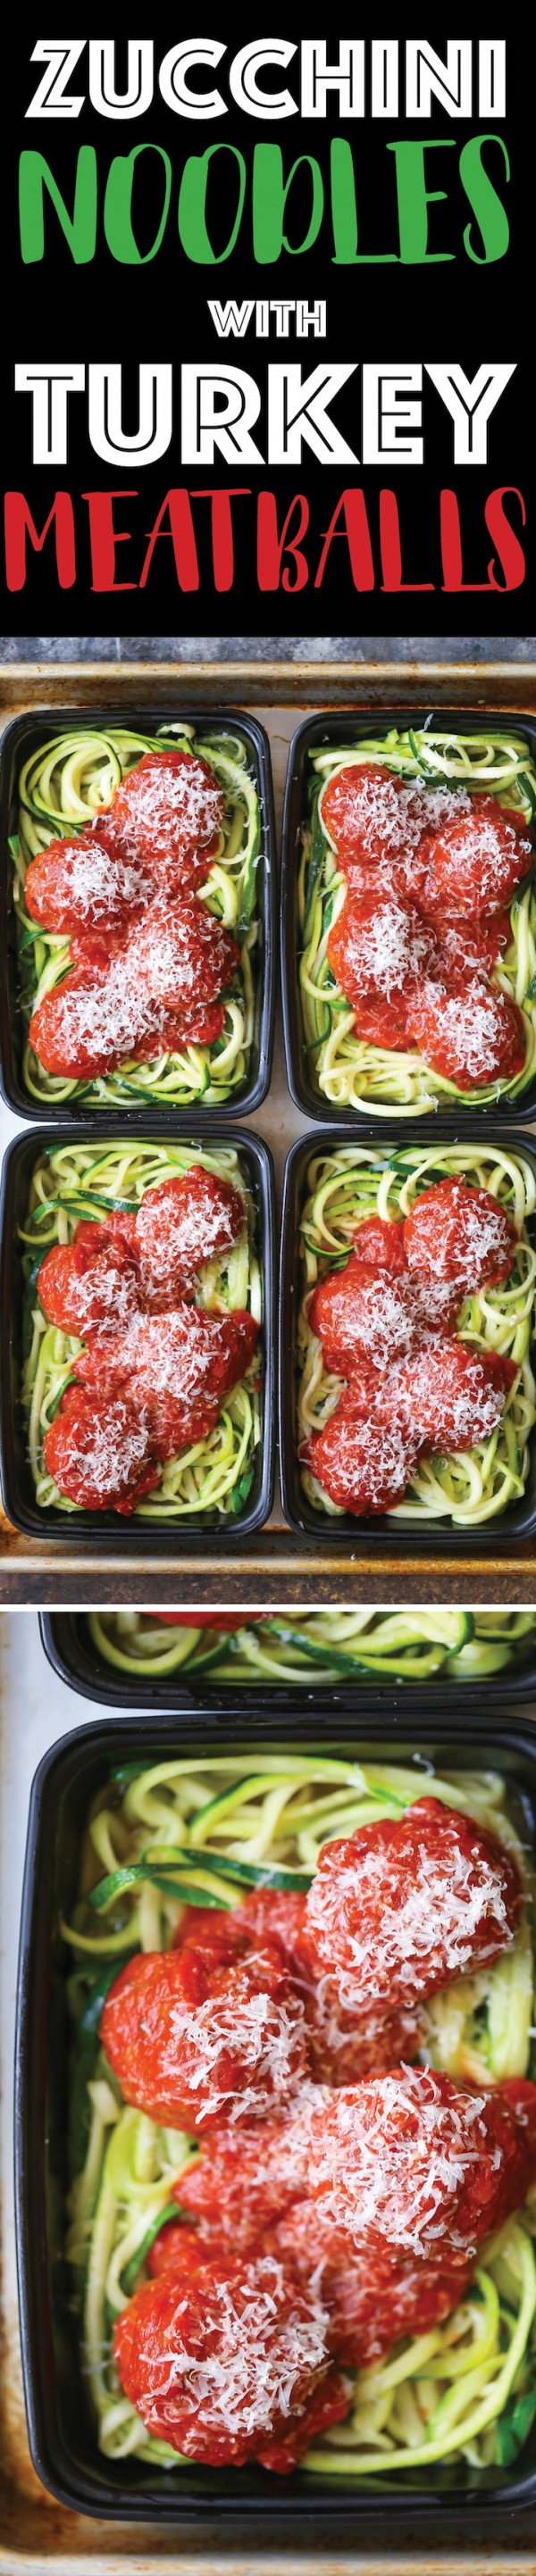 Get the recipe Zucchini Noodle with Turkey Meatballs @recipes_to_go